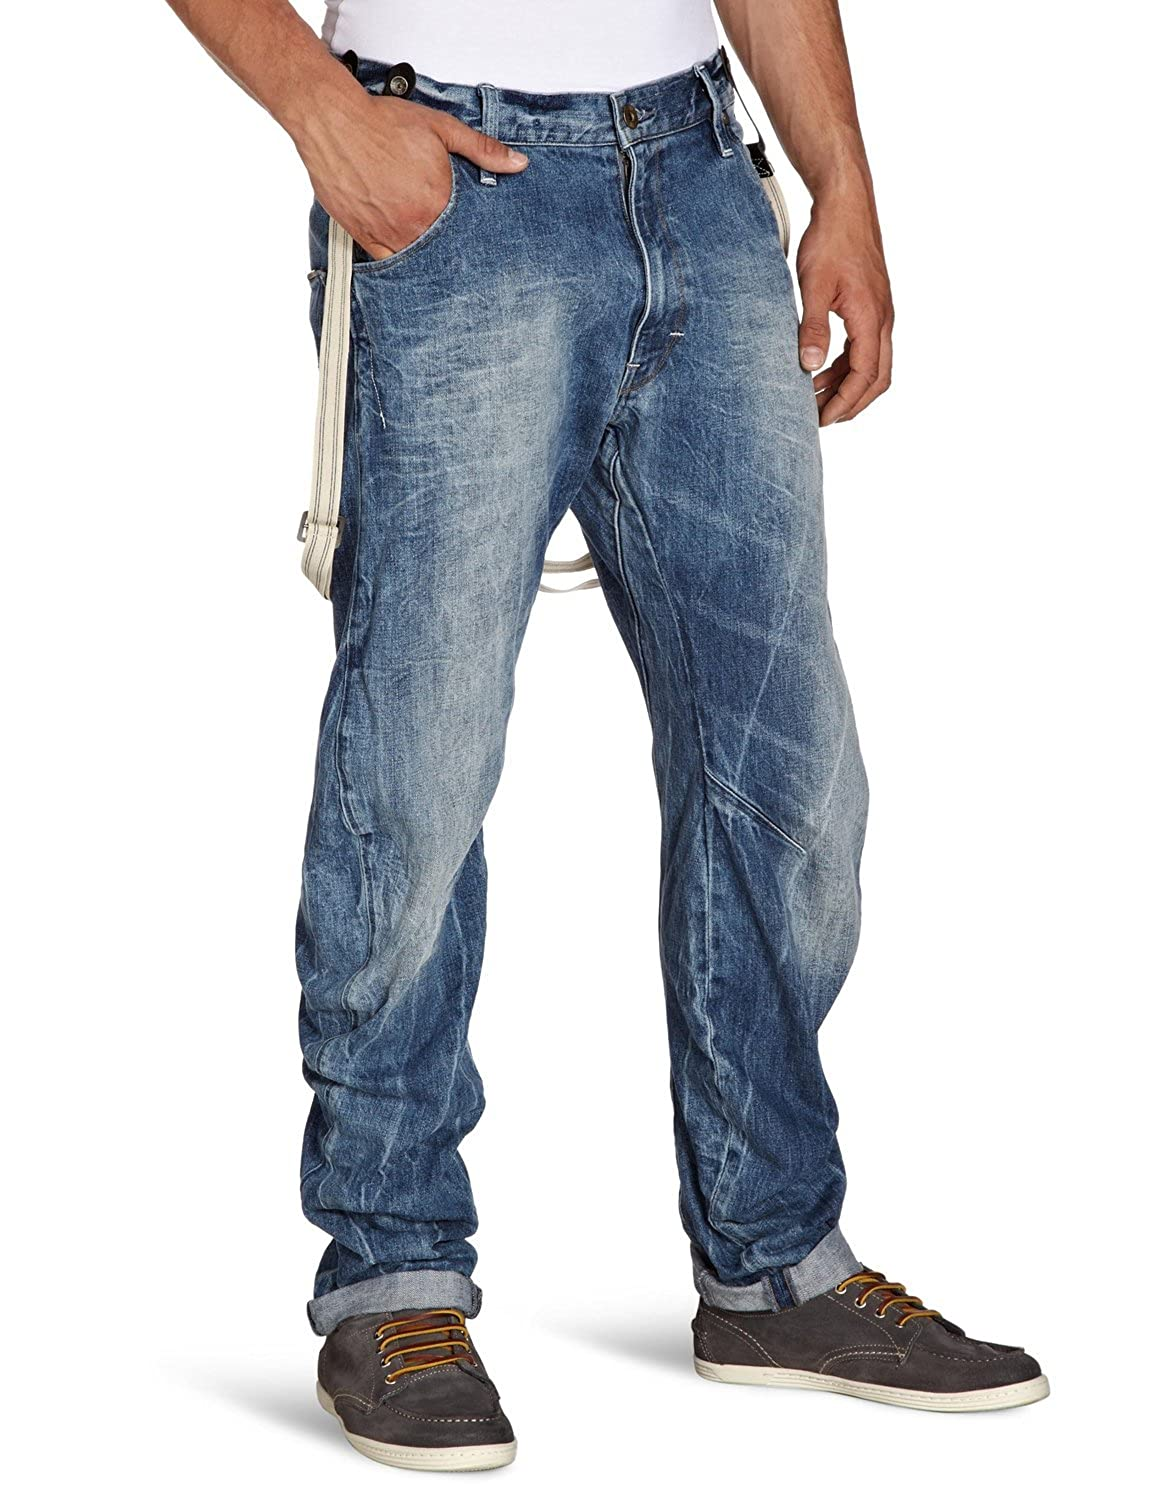 g star jeans for sale, G star raw arc 3d tapered 1 2